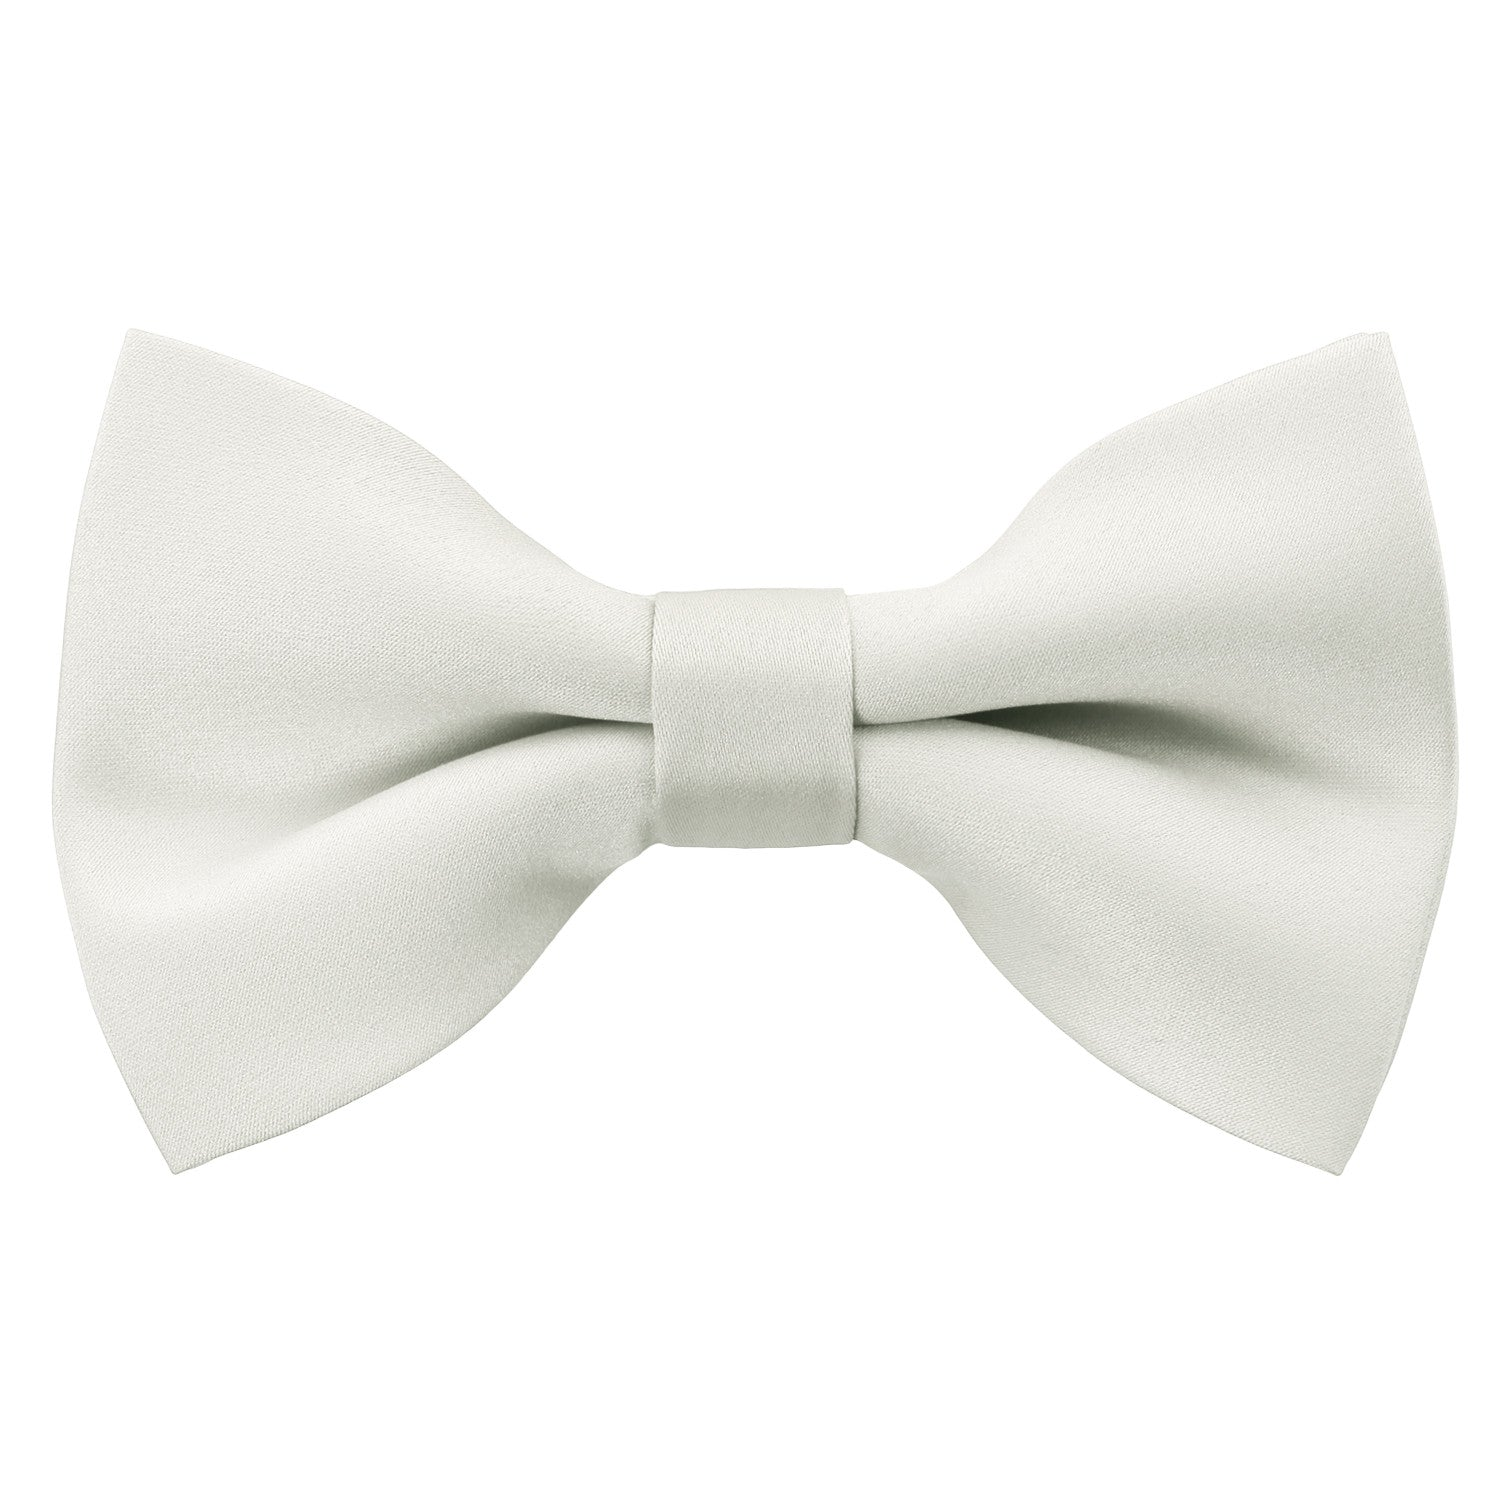 WHITE Bow Tie and Handkerchief Set- MONDAYSUIT